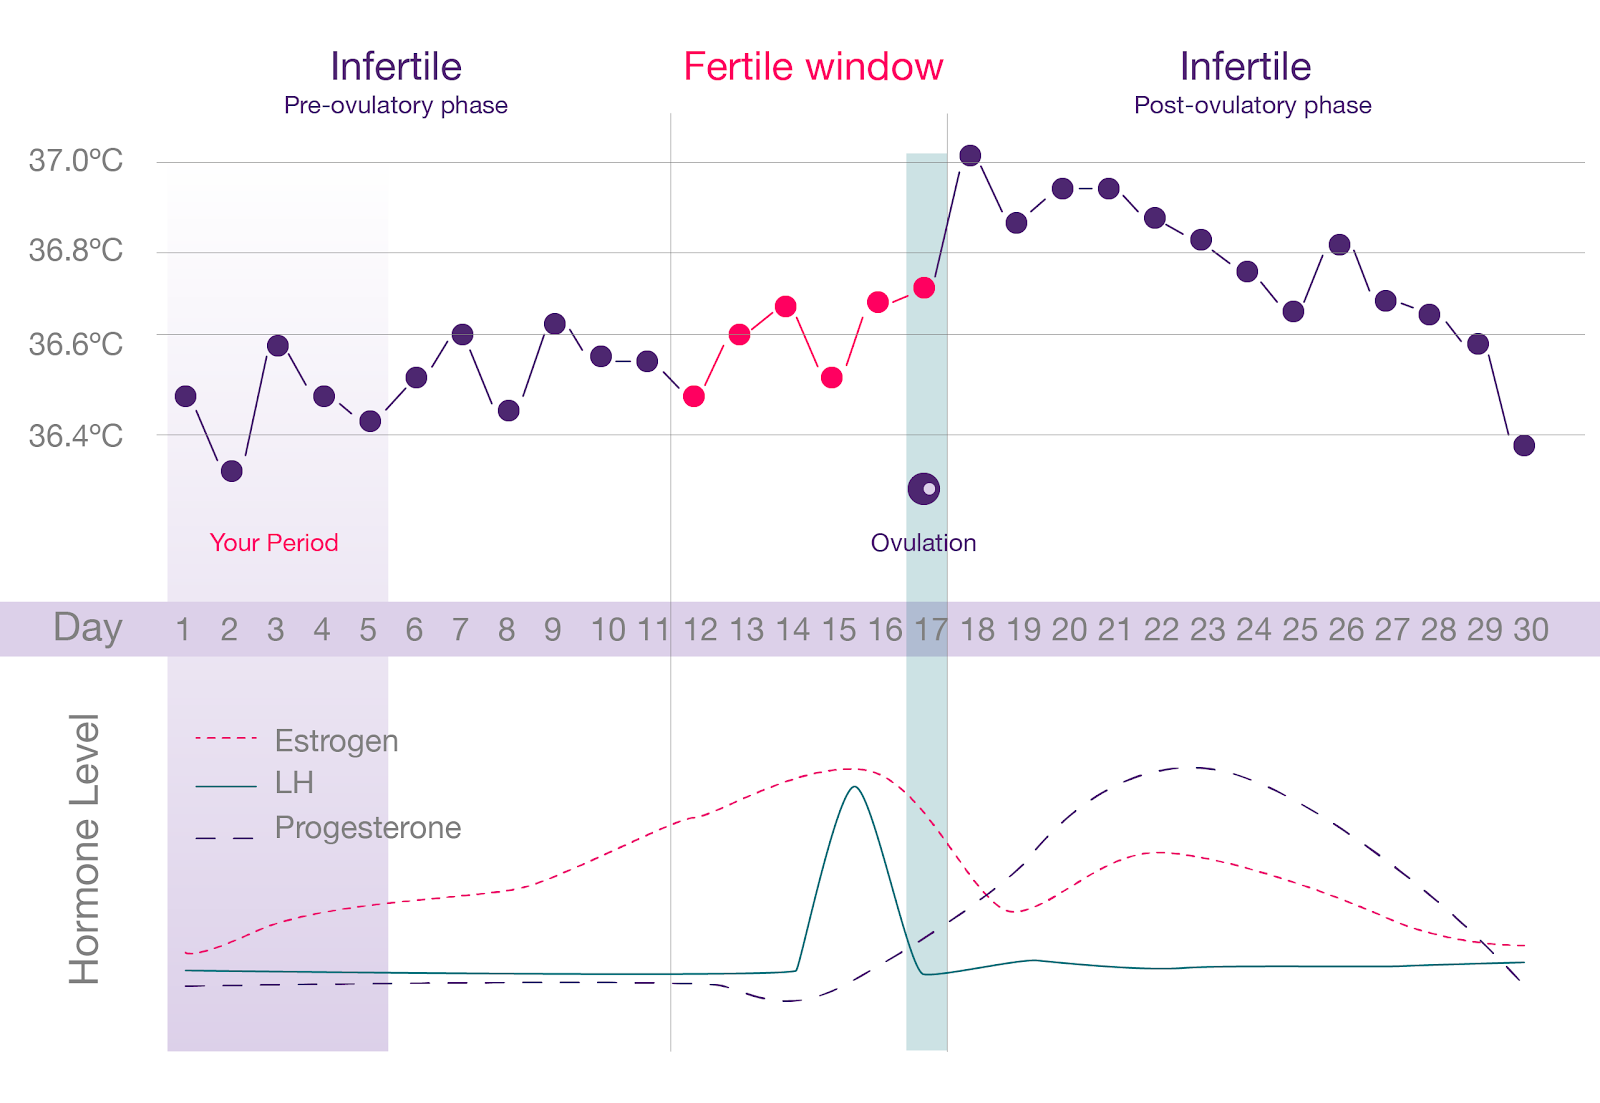 An example of a woman's menstrual cycle, though every woman's is different, similar to those used as a model for fertility tracking apps. There is no 'safe' time of any cycle to have unprotected sex.